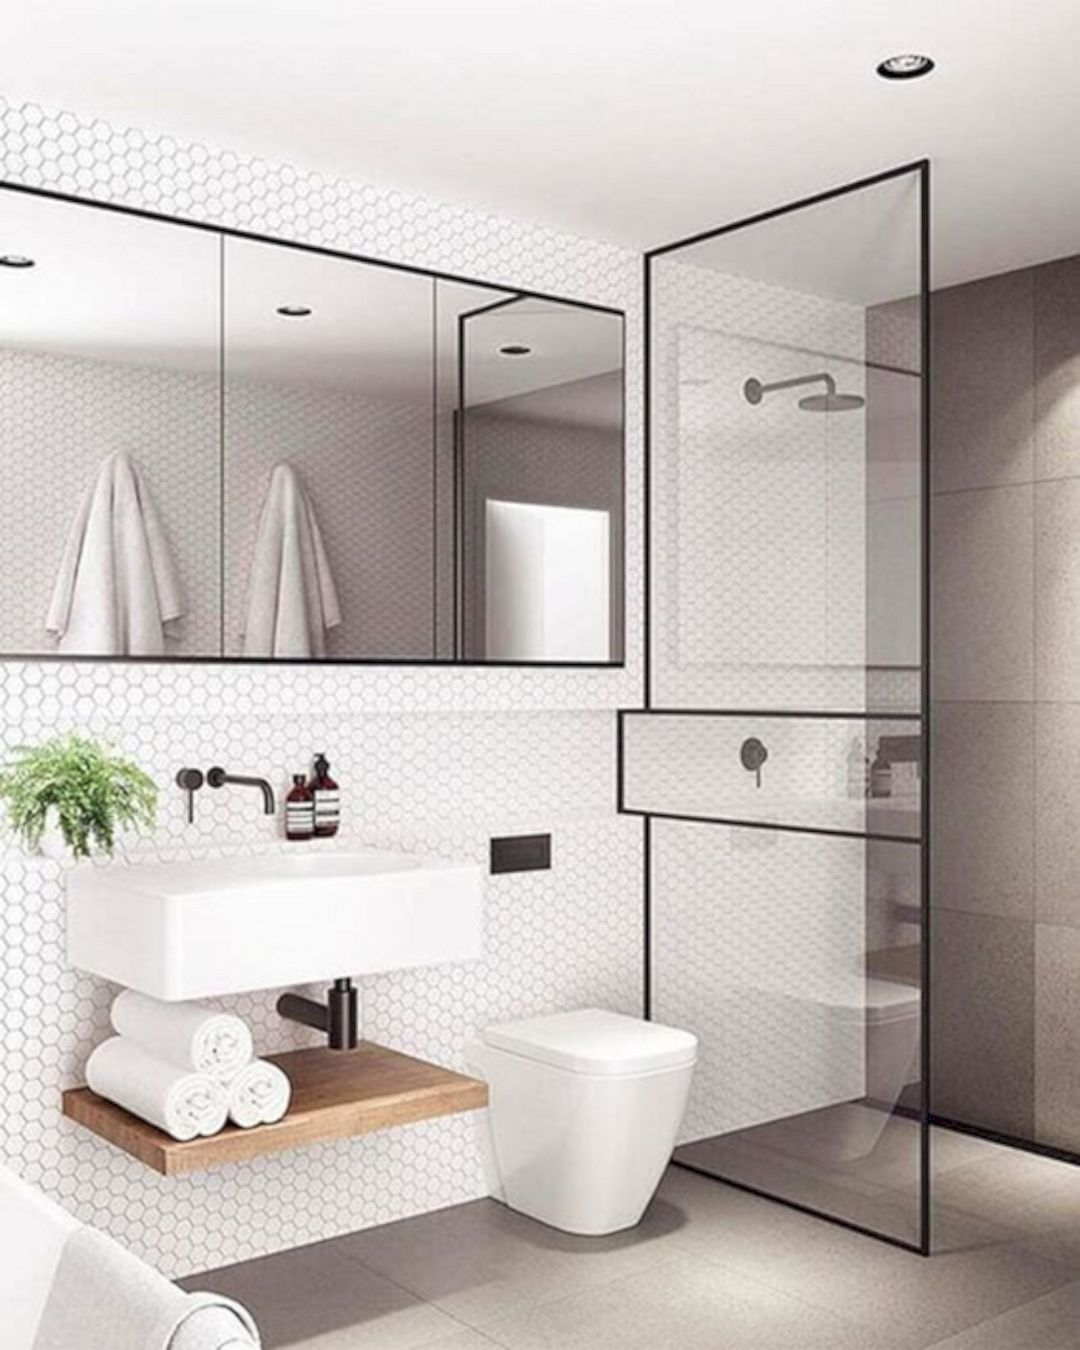 Mirror in bathroom mirrors for bathrooms best plants also suprising small design ideas and decor rh pinterest